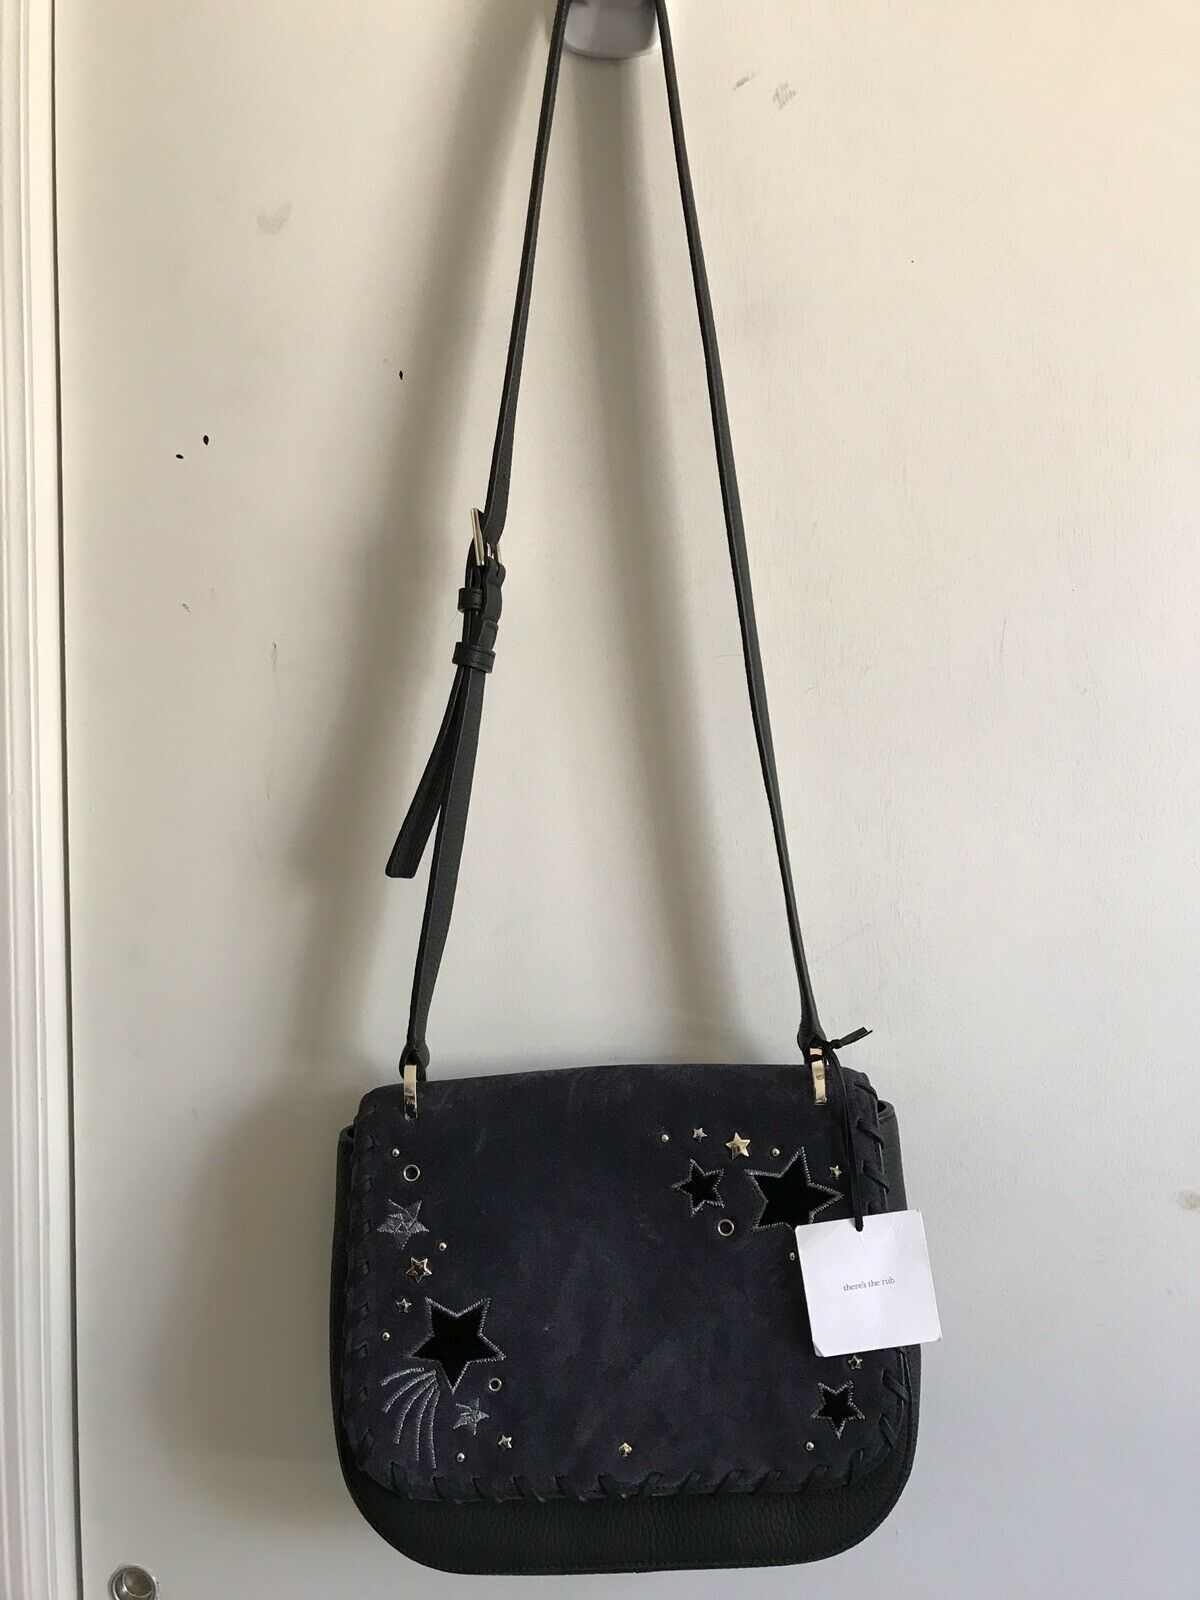 NWT! KATE SPADE Madison Collection Navy Leather Crossbody